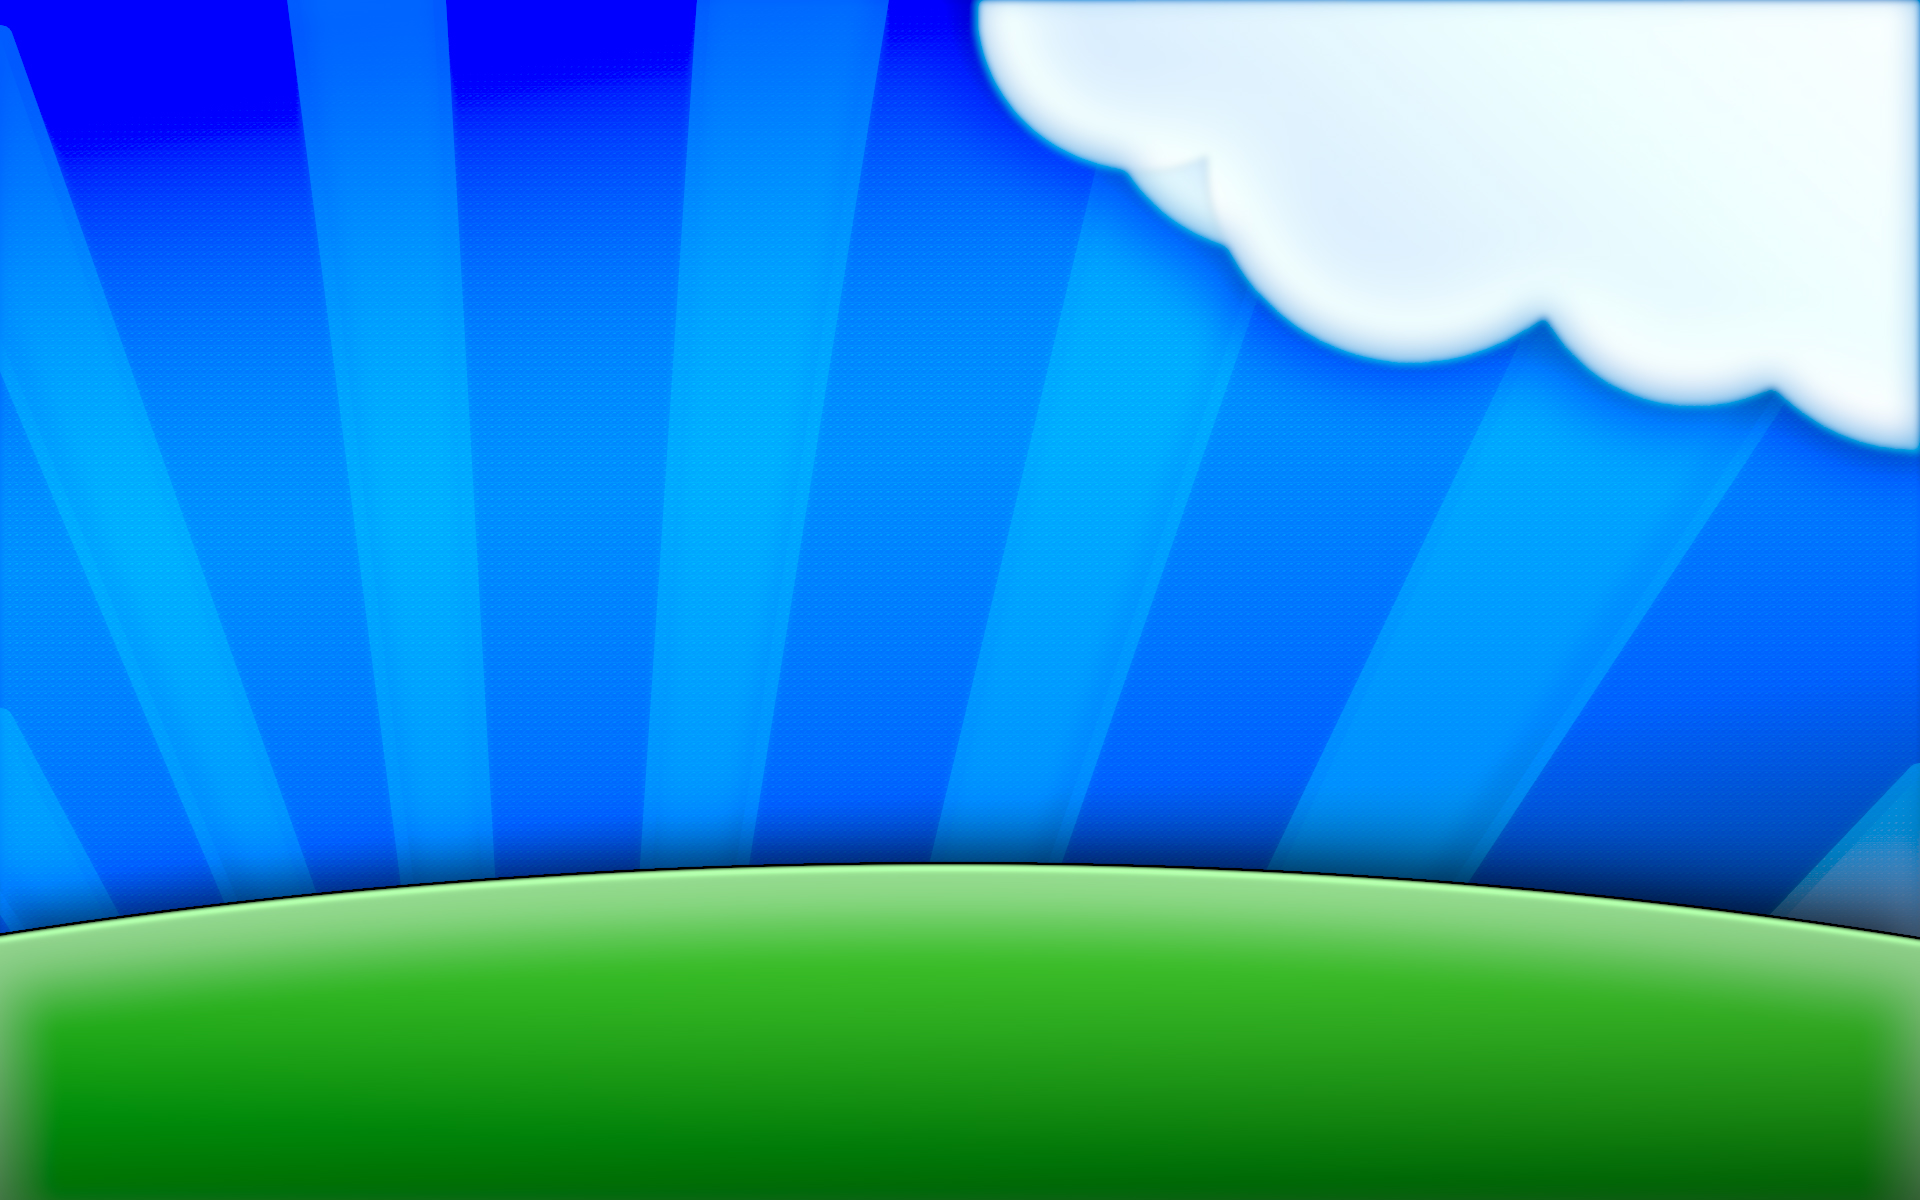 Sky and Grass Illustration wallpapers | Sky and Grass ...